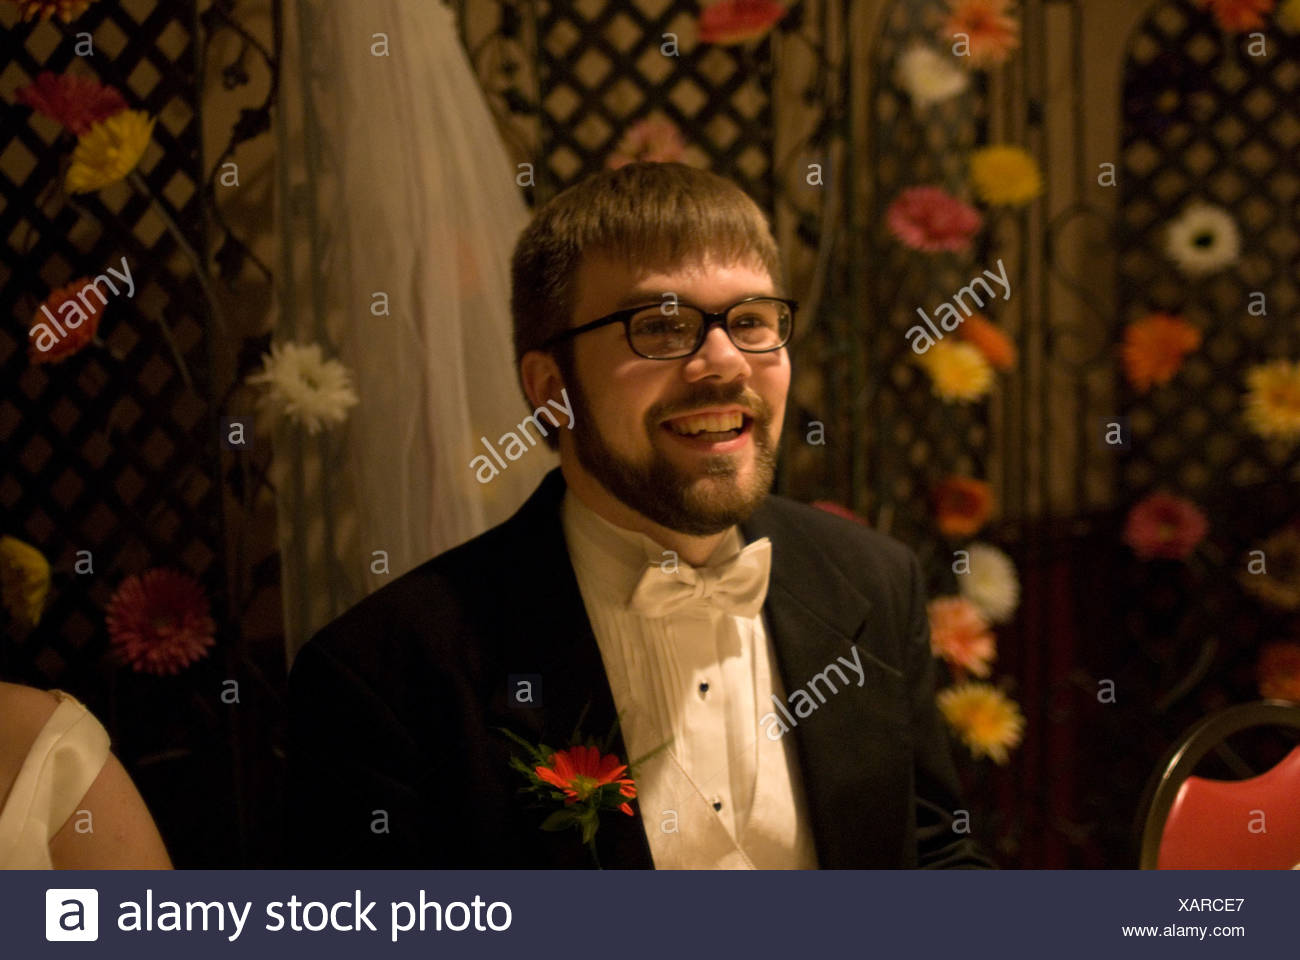 A man in a tux smiles on his wedding day. - Stock Image